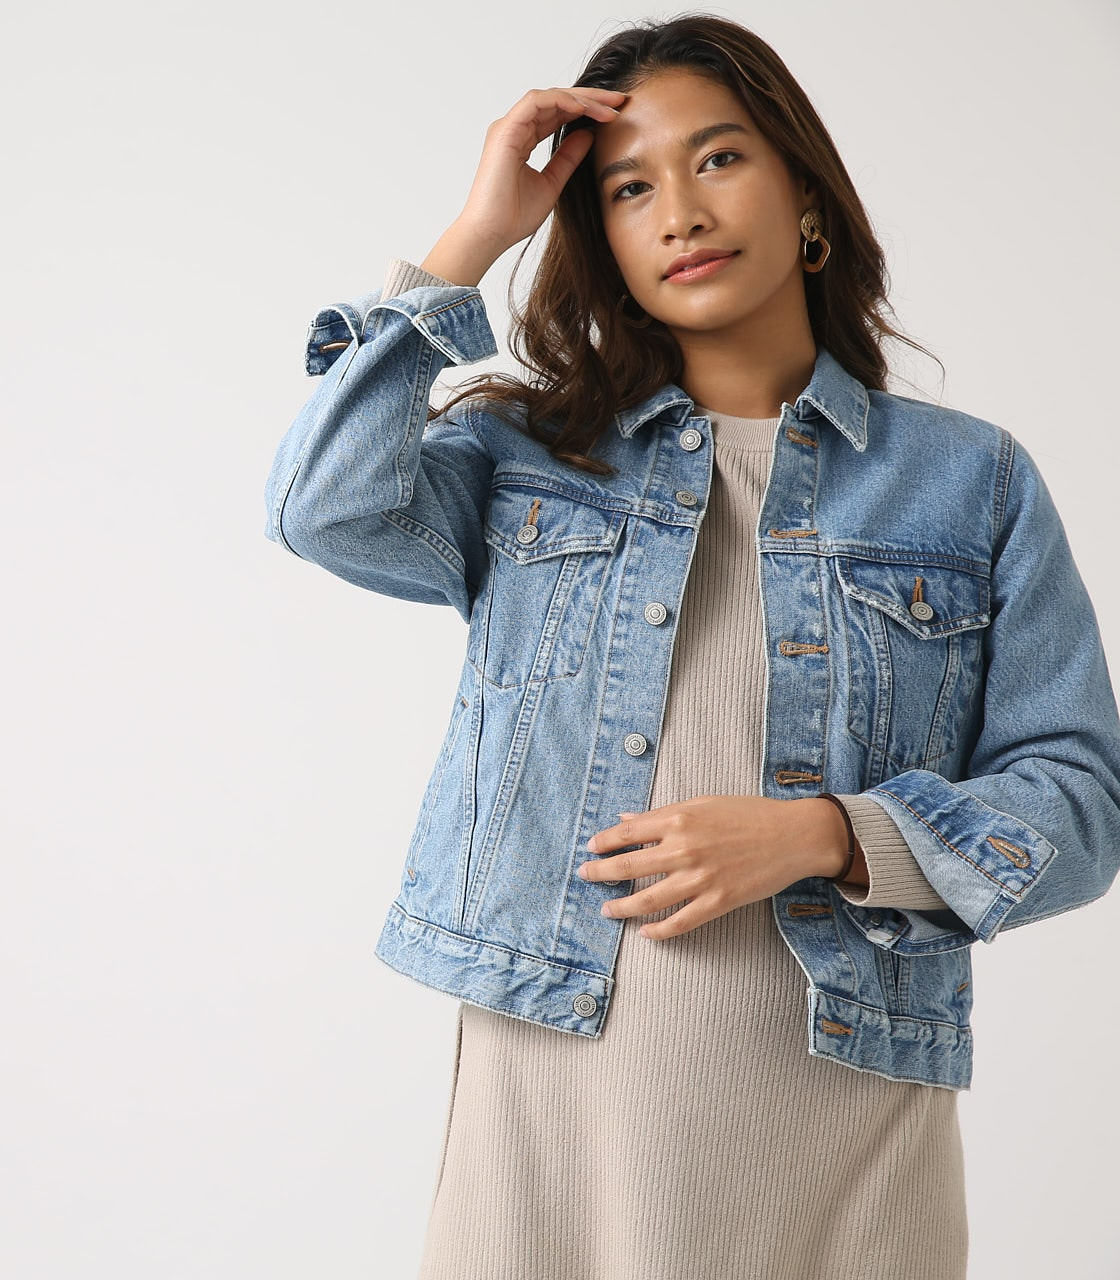 【AZUL BY MOUSSY】DENIM JACKET 詳細画像 L/BLU 1